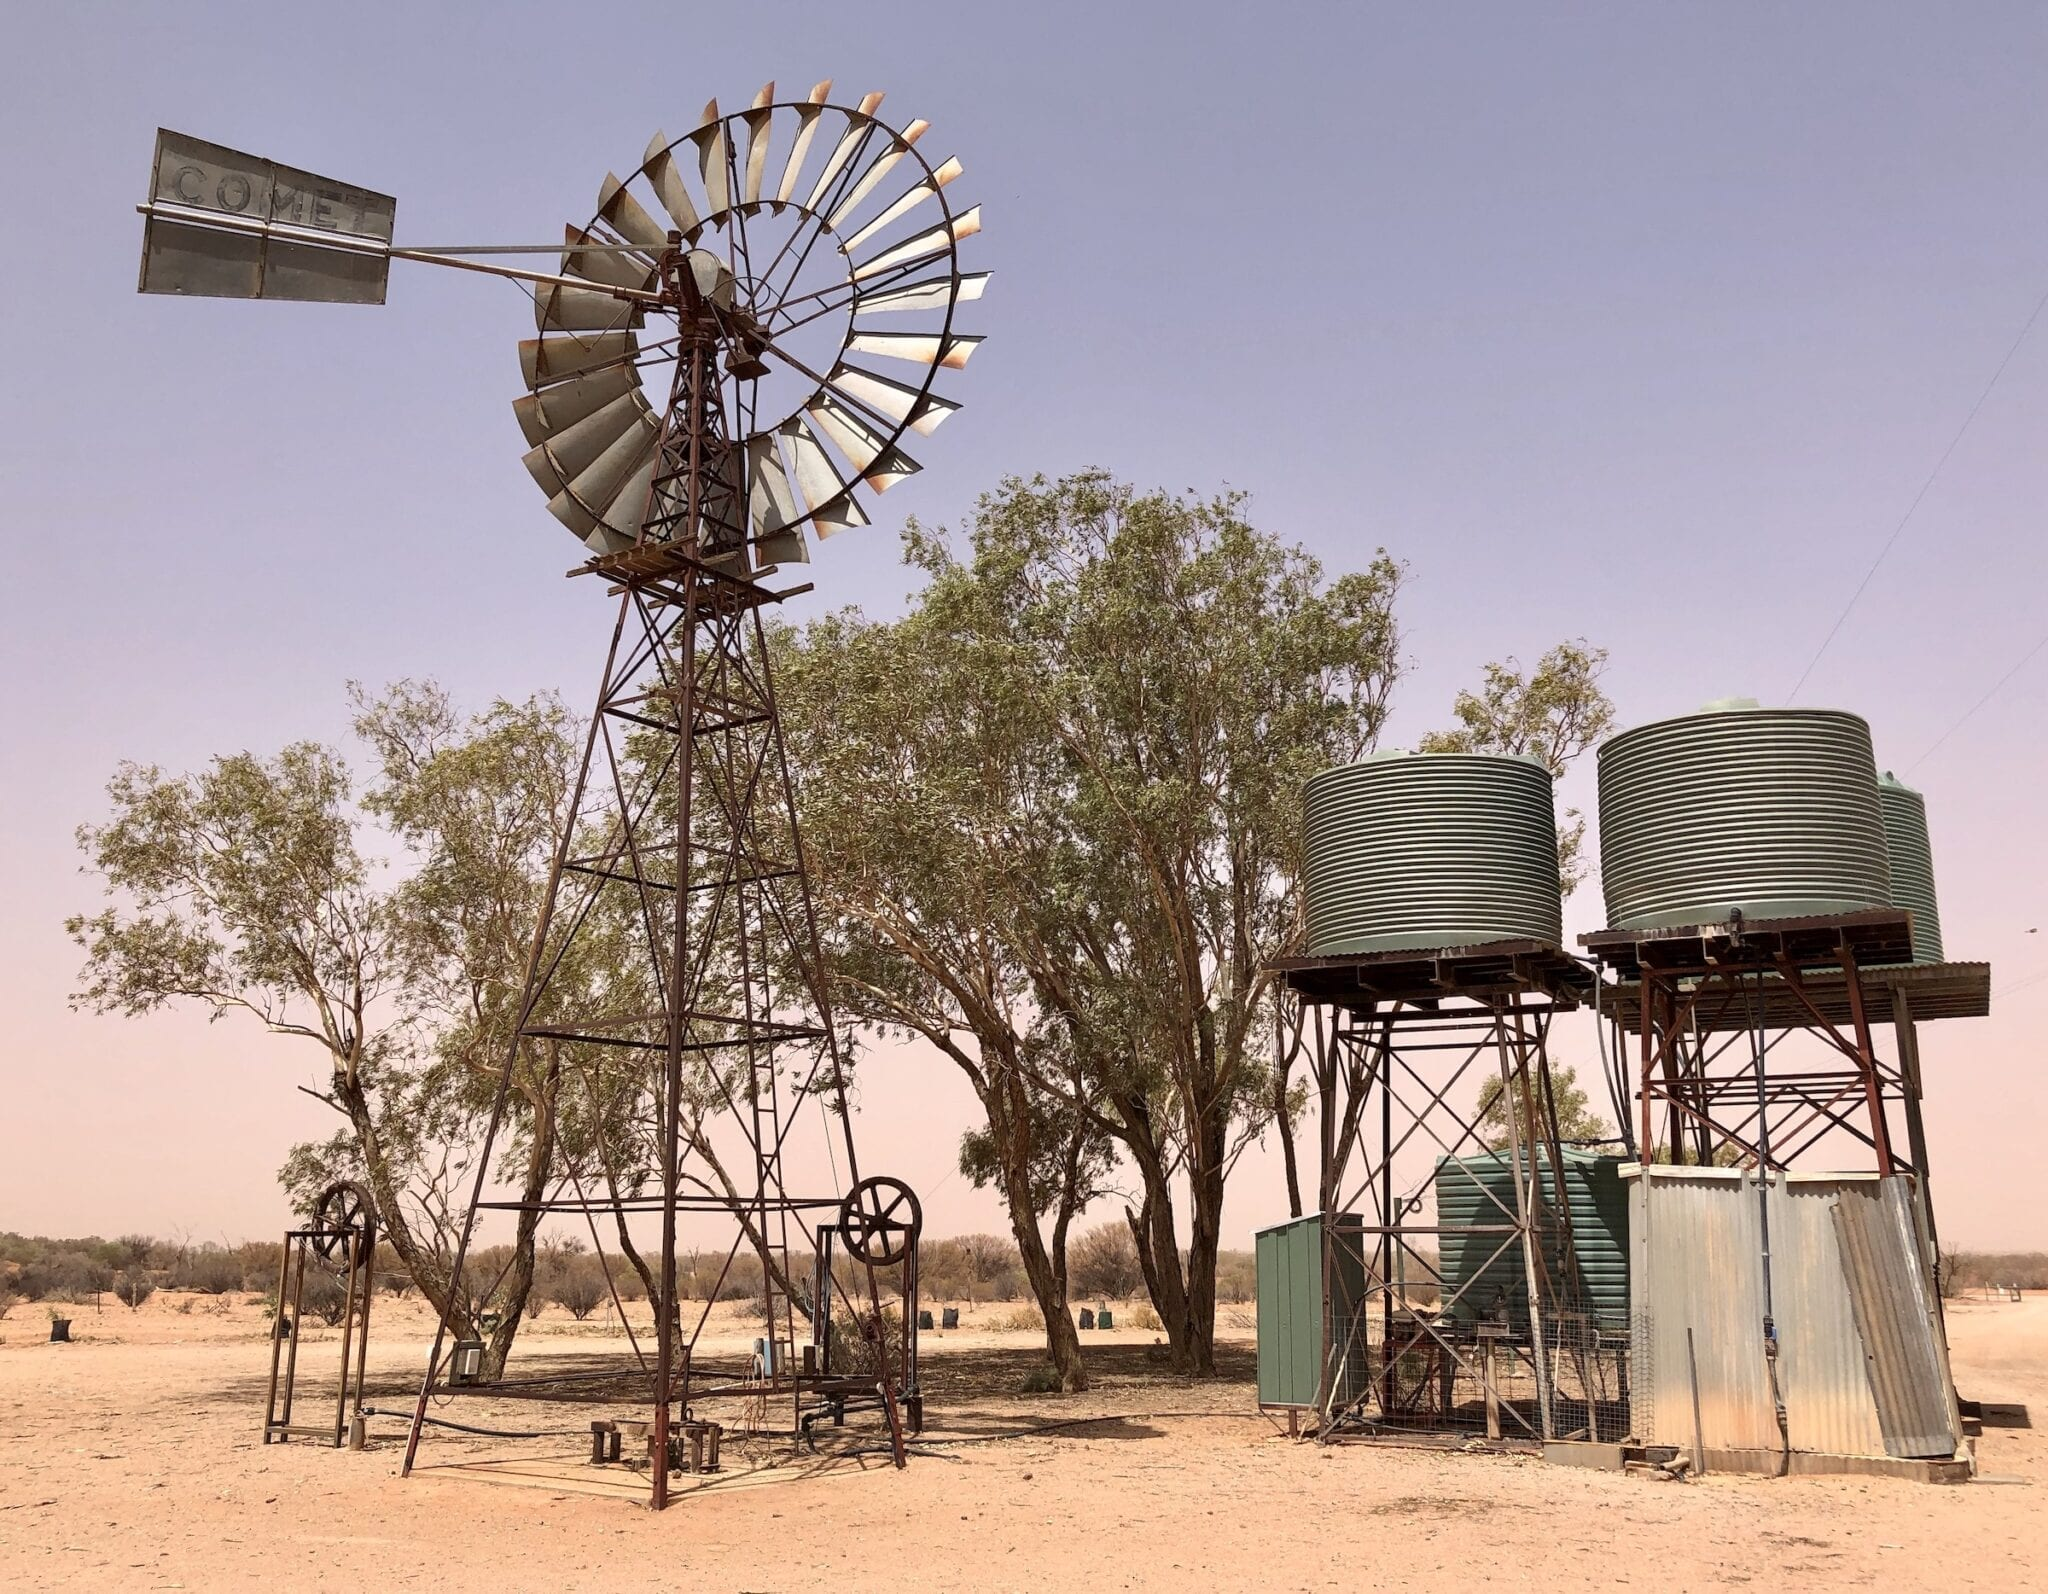 Water tanks and old windmill at Fort Grey Homestead, Sturt National Park NSW.